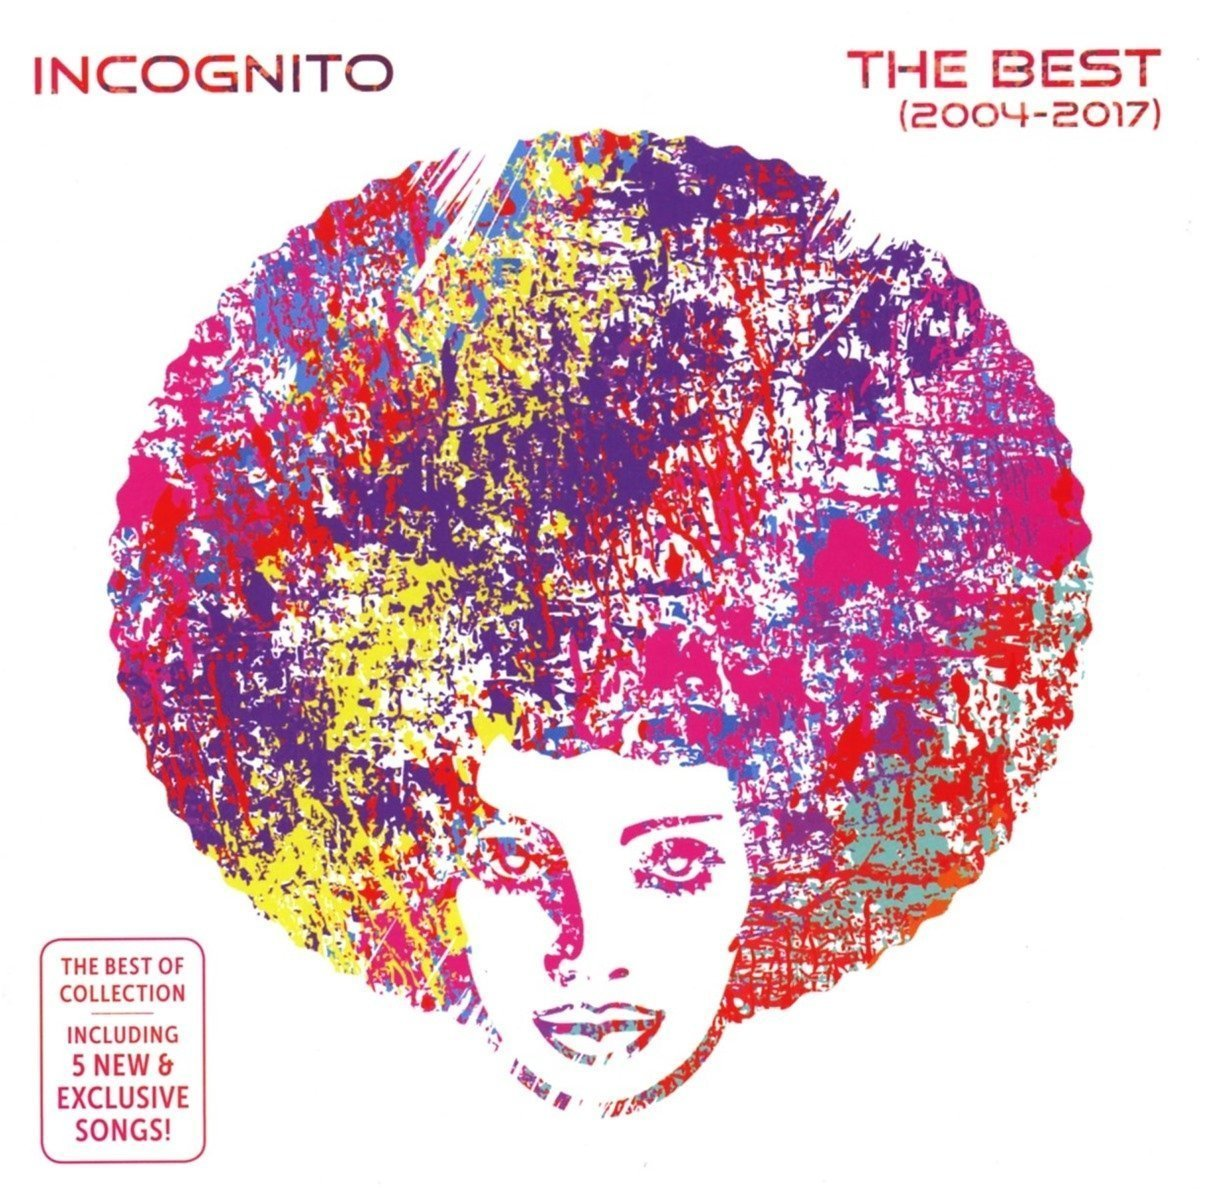 """One of my all time favourite Soul, Funk, Jazz UK bands """"Incognito"""" & very happy to hear their new track with exciting Soul RnB sensation """"Tony Momrelle"""". When you combine these two quality acts you know it's going to be something special. Released on """"Incognito's, BEST OF (2004 - 2017)"""" LP including just a dent of their many many years of wonderful music. This is a must album for any """"Incognito"""" fan or collector of Soul, Funk & Jazz.  DJ Lambam's rate: 8.5/10"""